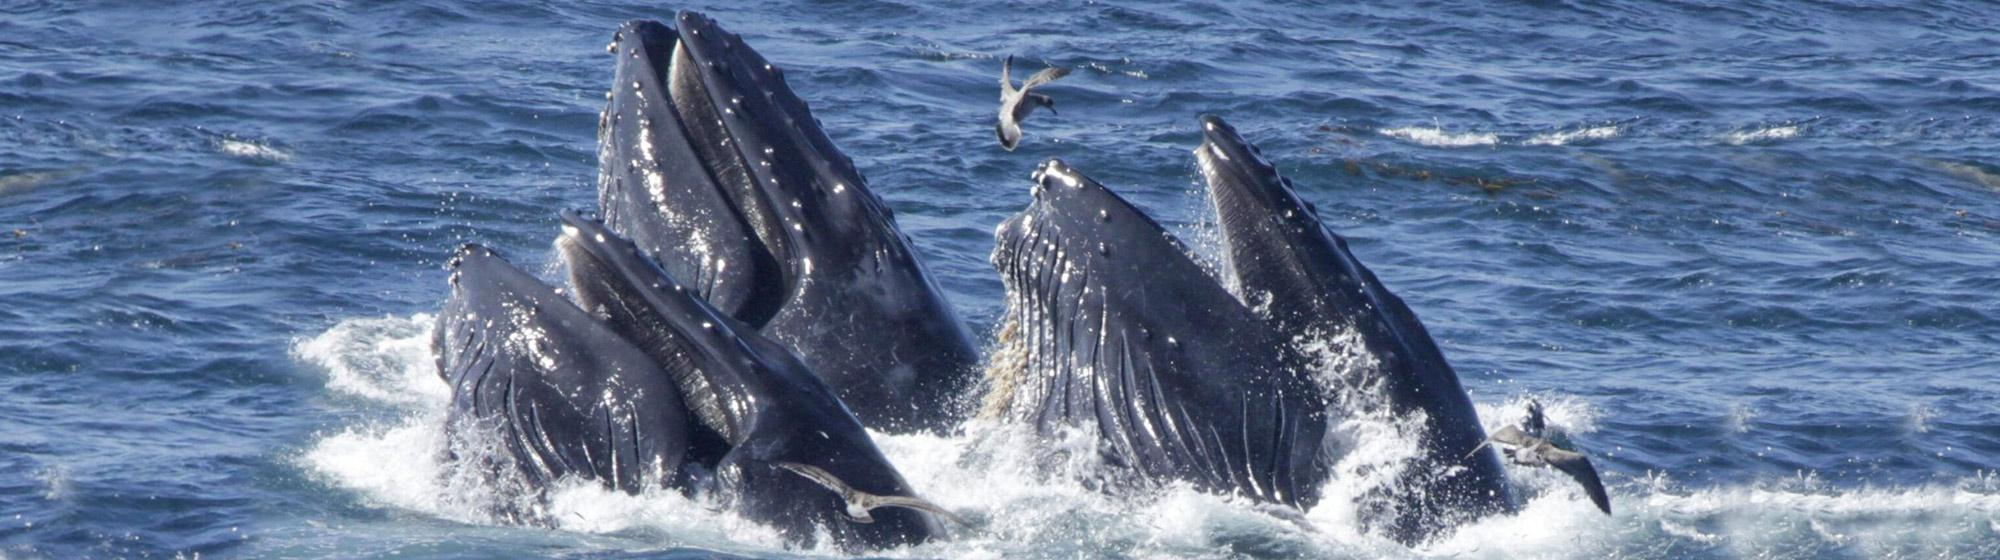 photo of whales breaching